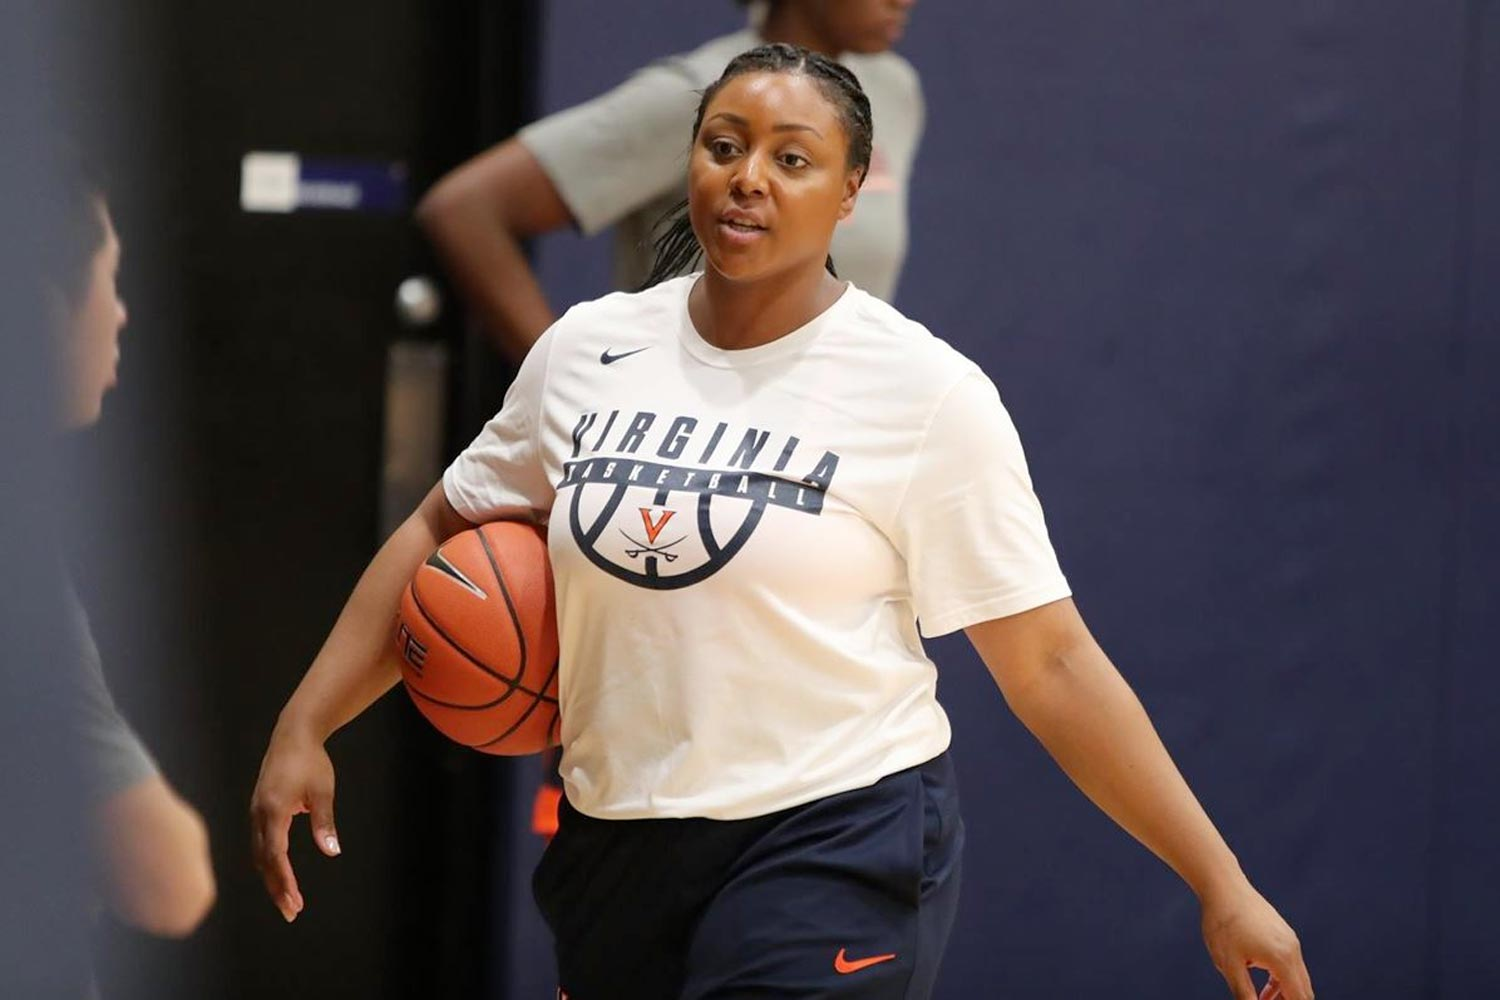 """The decision to return to UVA as an assistant coach was """"a no-brainer,"""" said Monica Wright, who starred for the Cavaliers before a successful professional career. (Photo by Matt Riley, UVA Athletics)"""